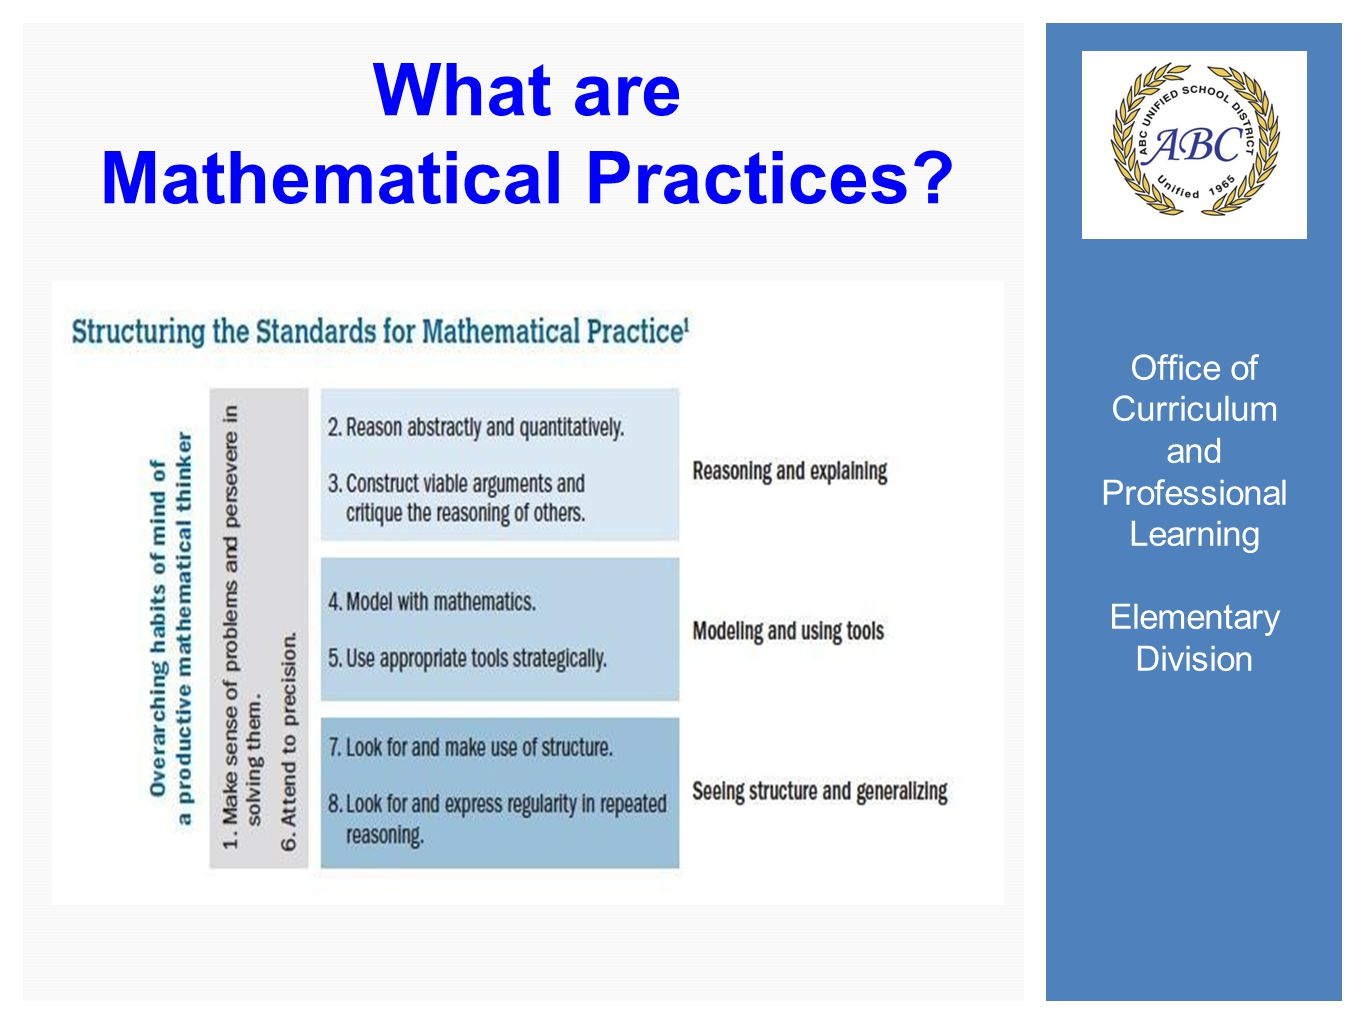 Office of Curriculum and Professional Learning Elementary Division What are Mathematical Practices